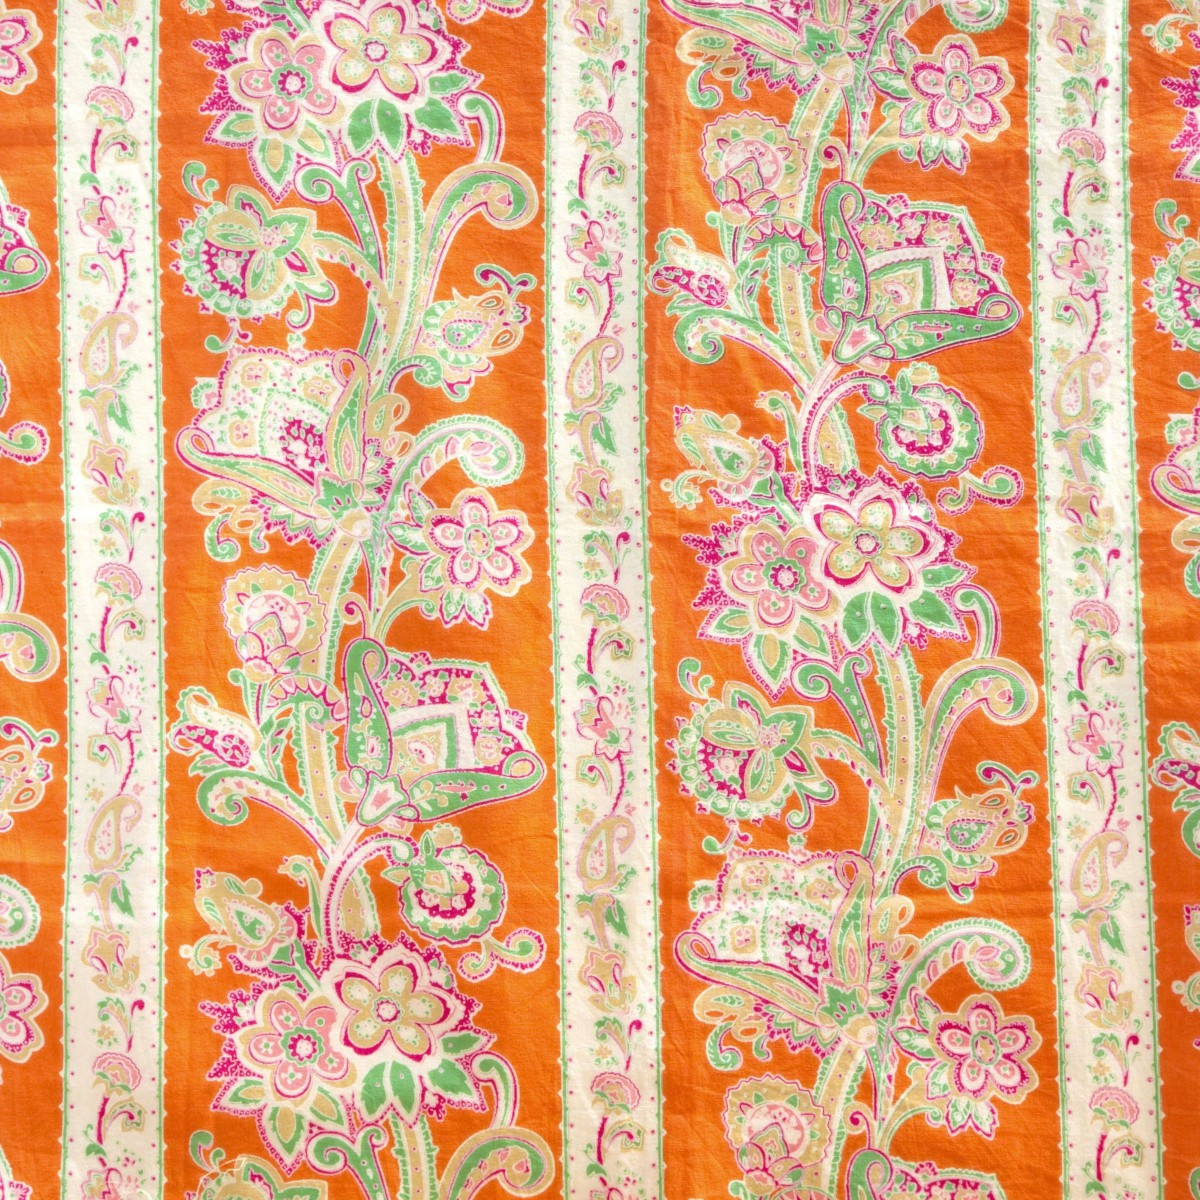 Provencal orange pink flower drape